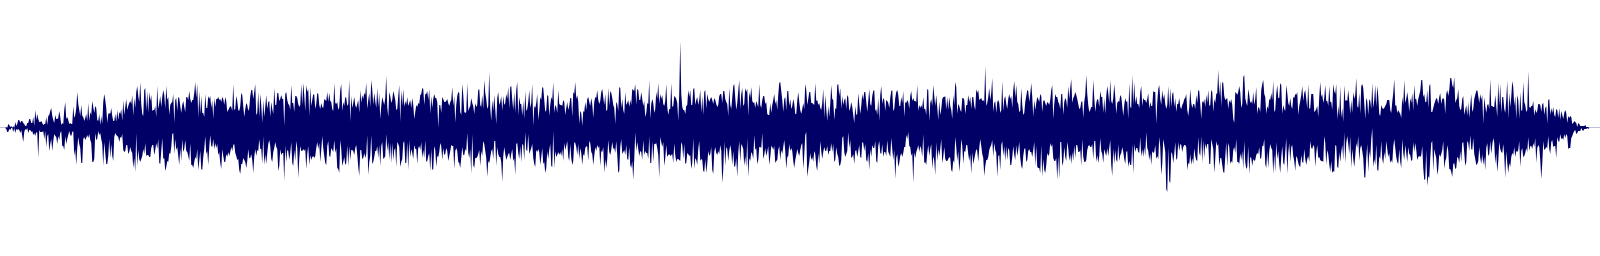 waveform of track #95281